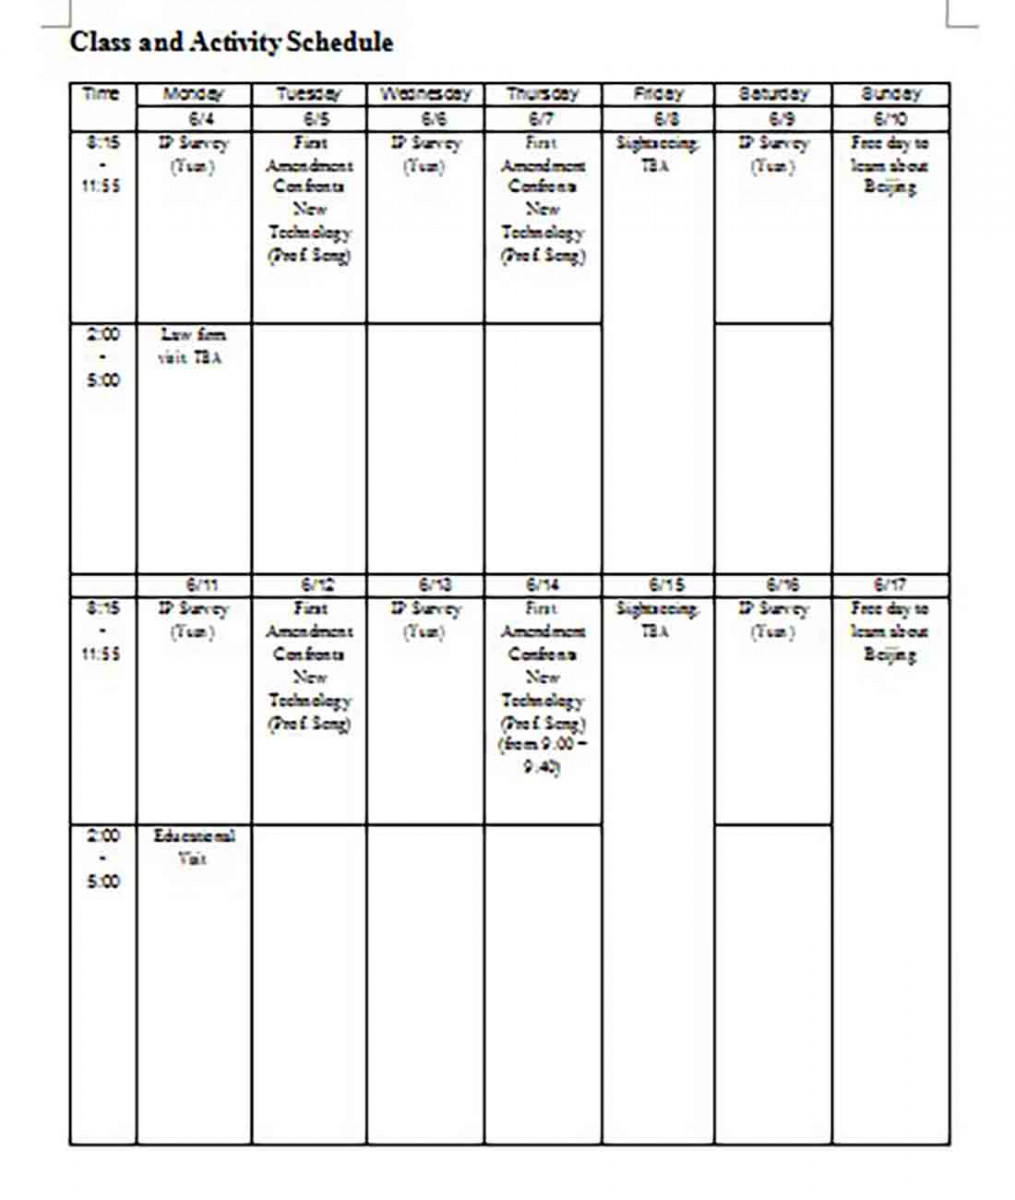 Class and Activity Schedule